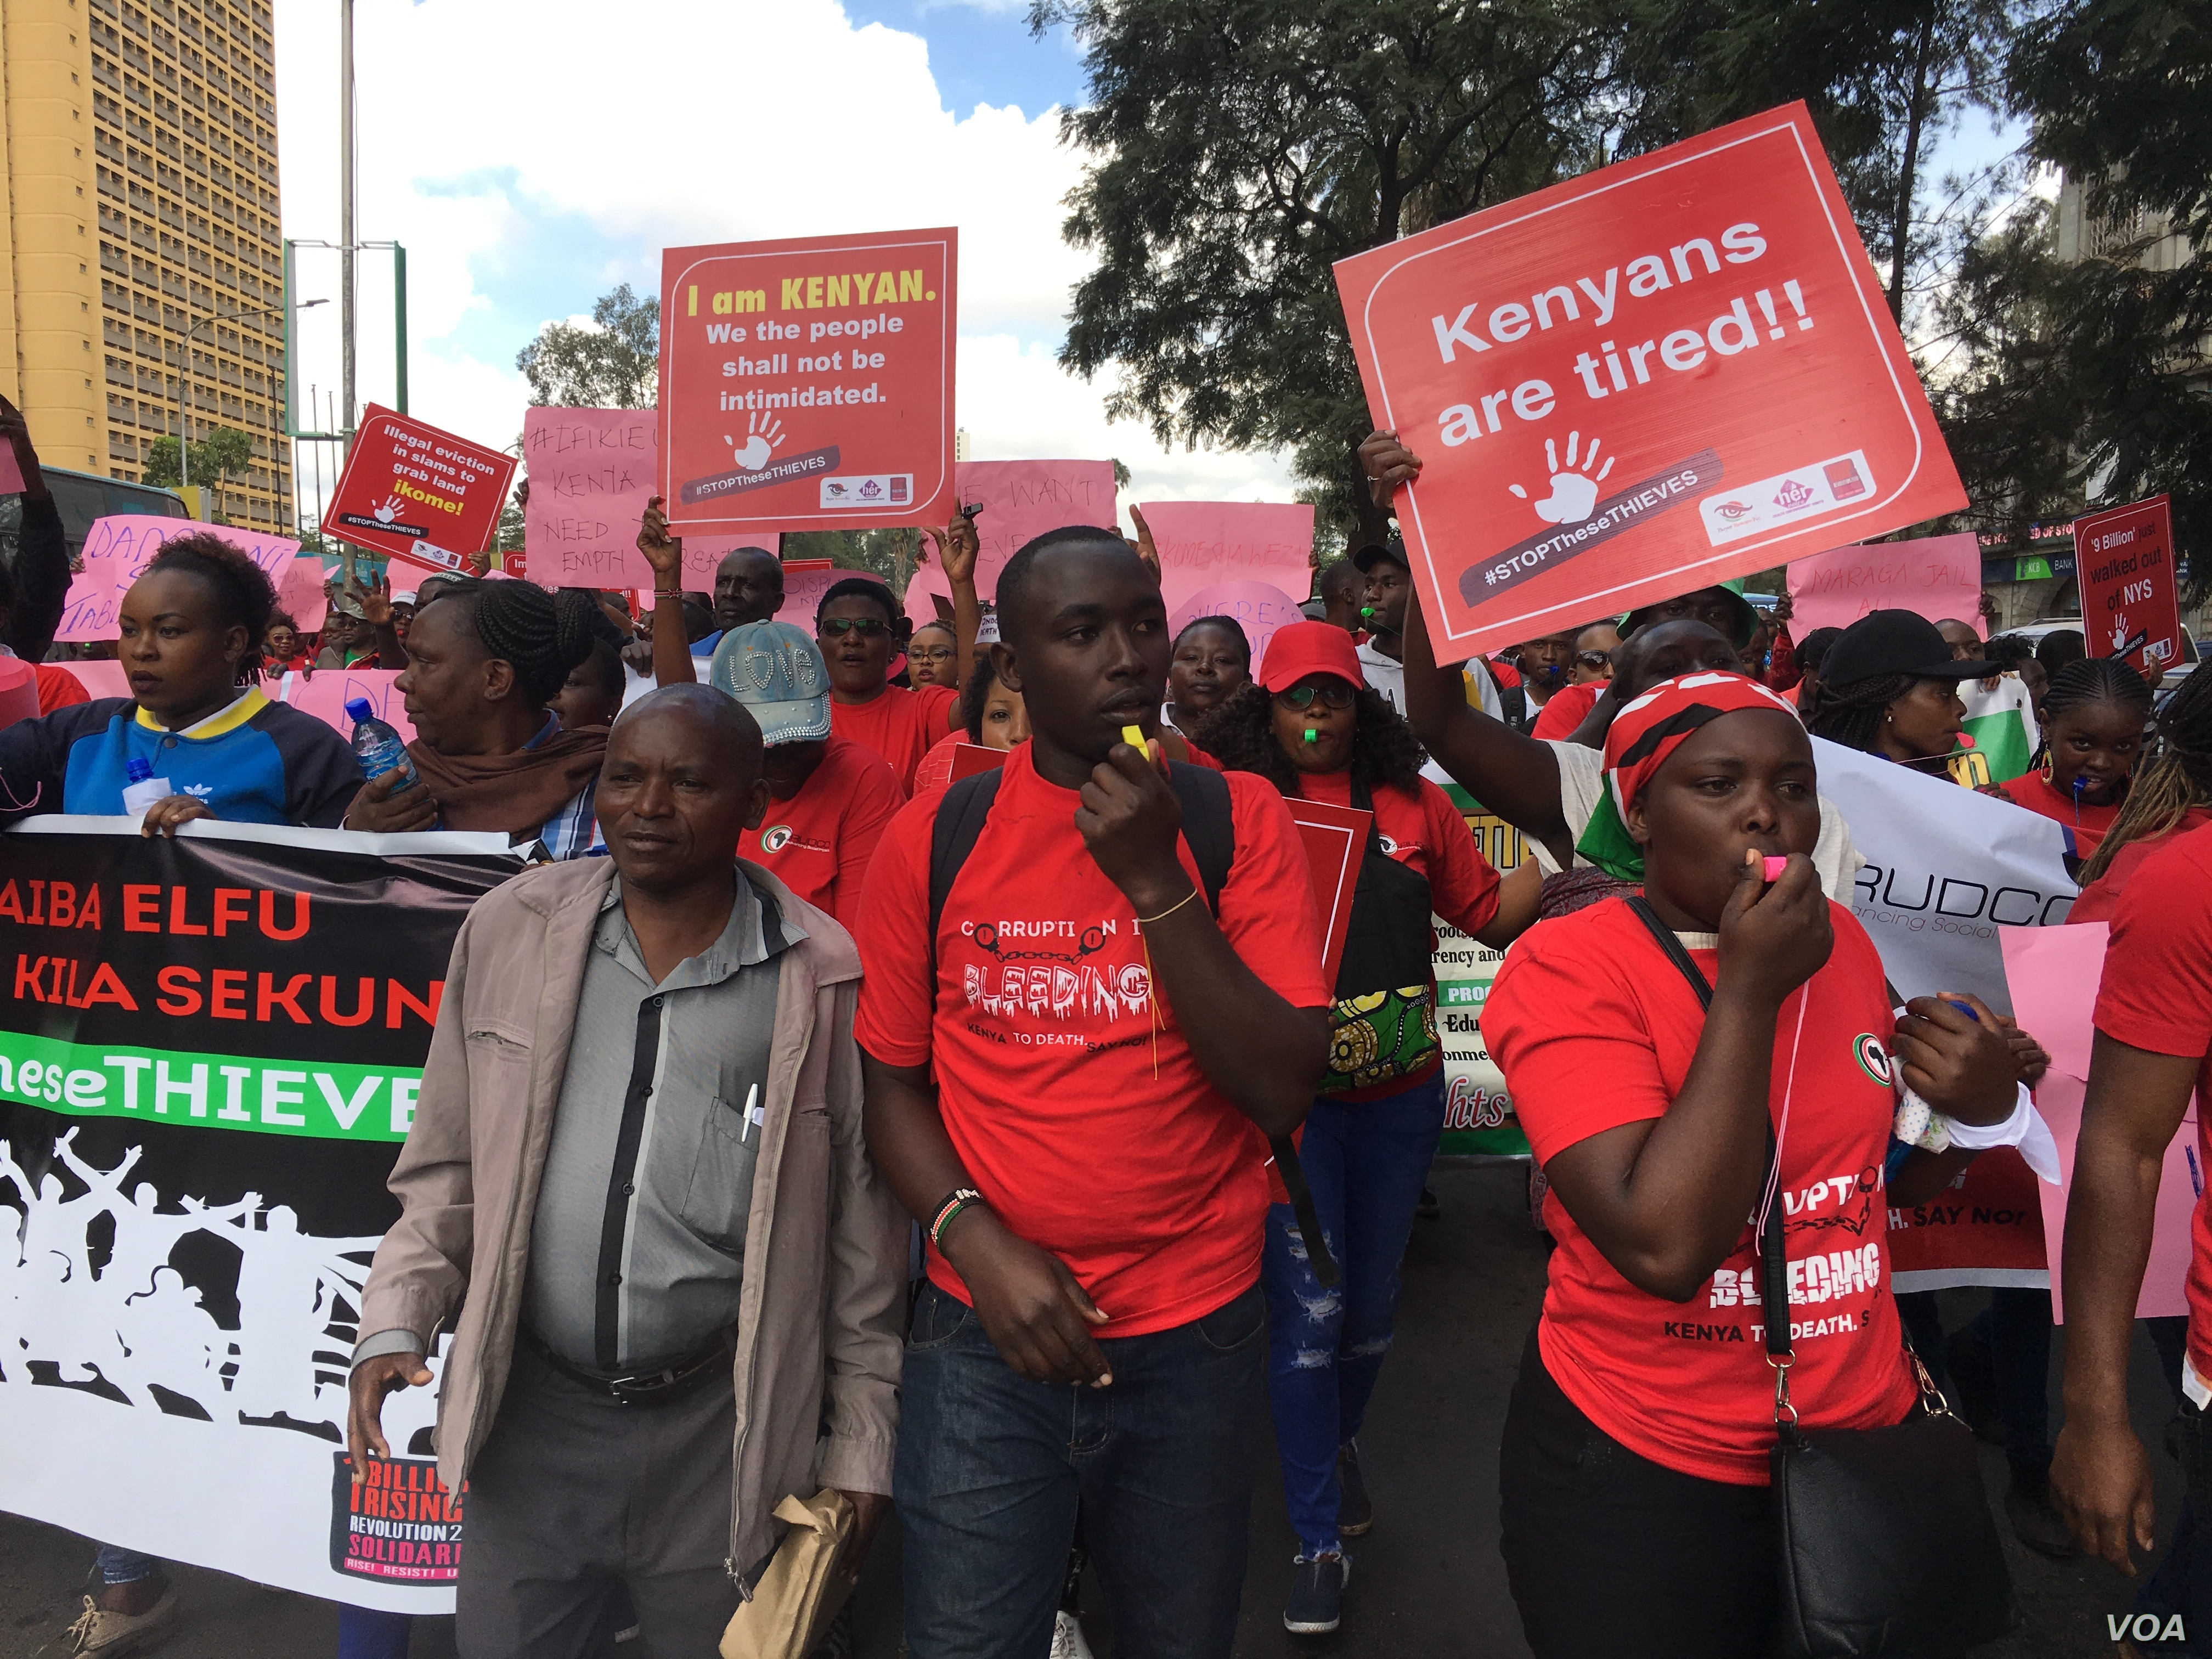 Justice Makau decision on on protests unjustifiable